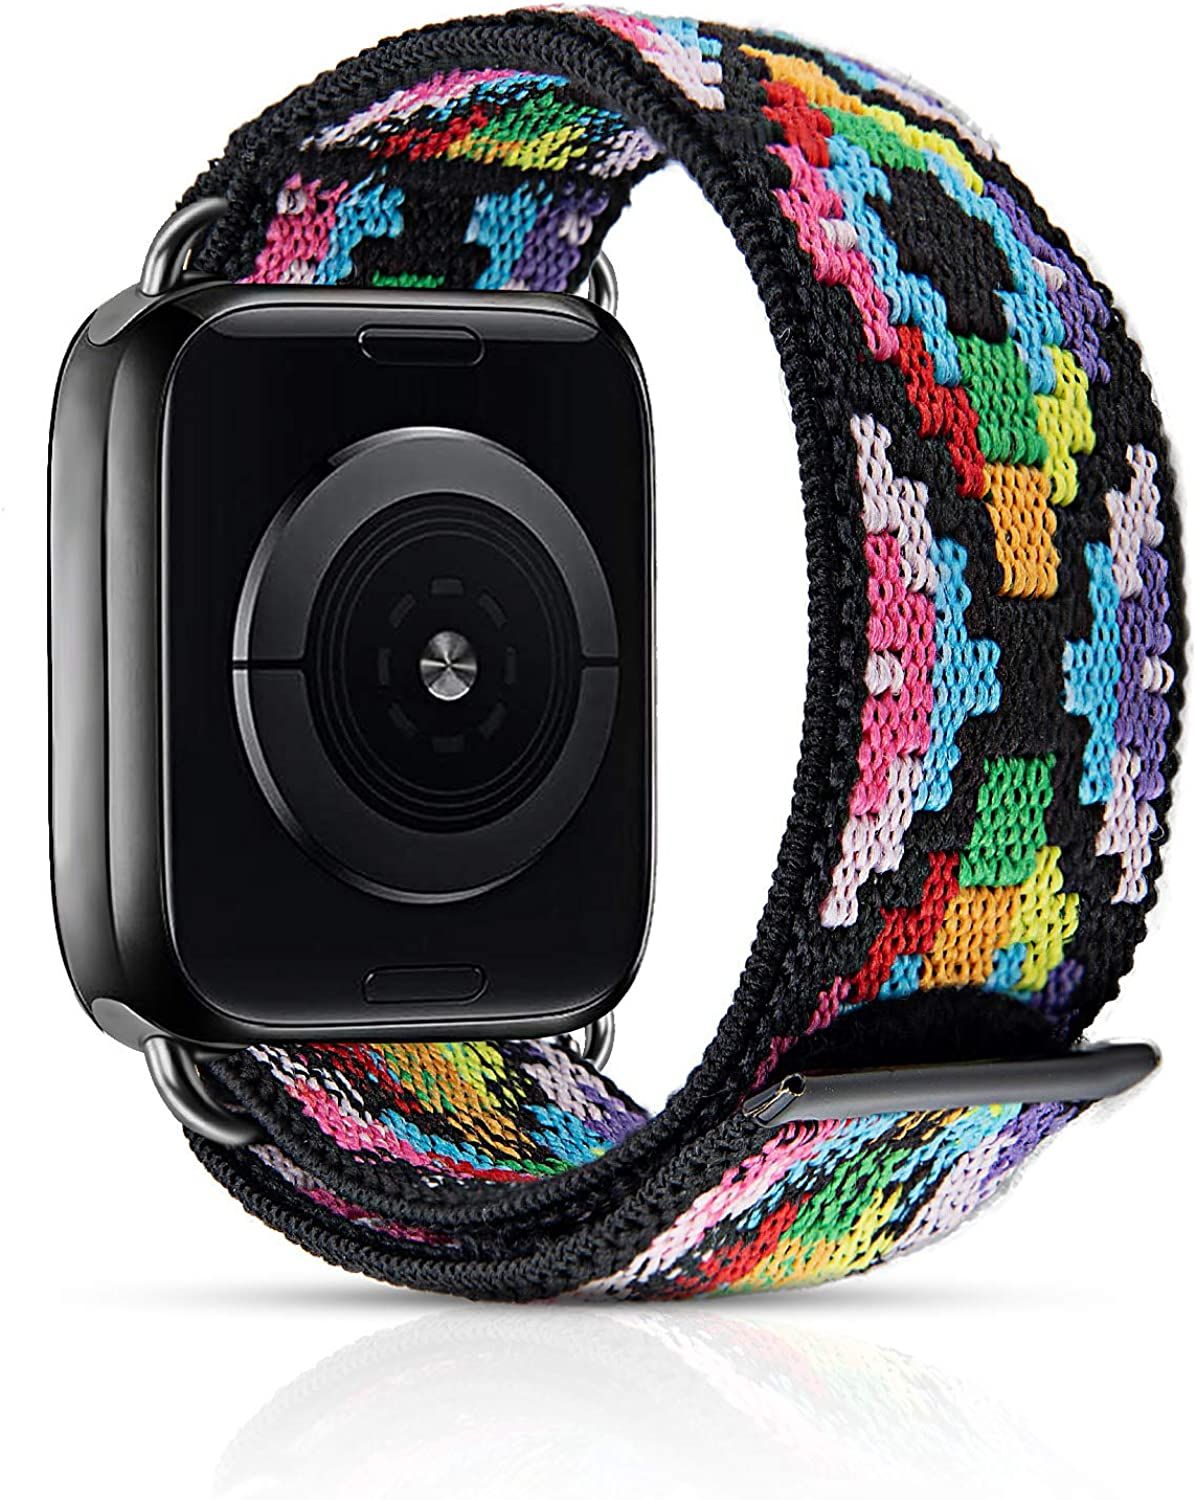 MEULOT Stretchy Braided Watch Band Compatible with Apple Watch Band Series 4 3 SE 6 5 2 1, Adjustable Elastic Soft Watch Band for iWatch 38mm 40mm 42mm 44mm